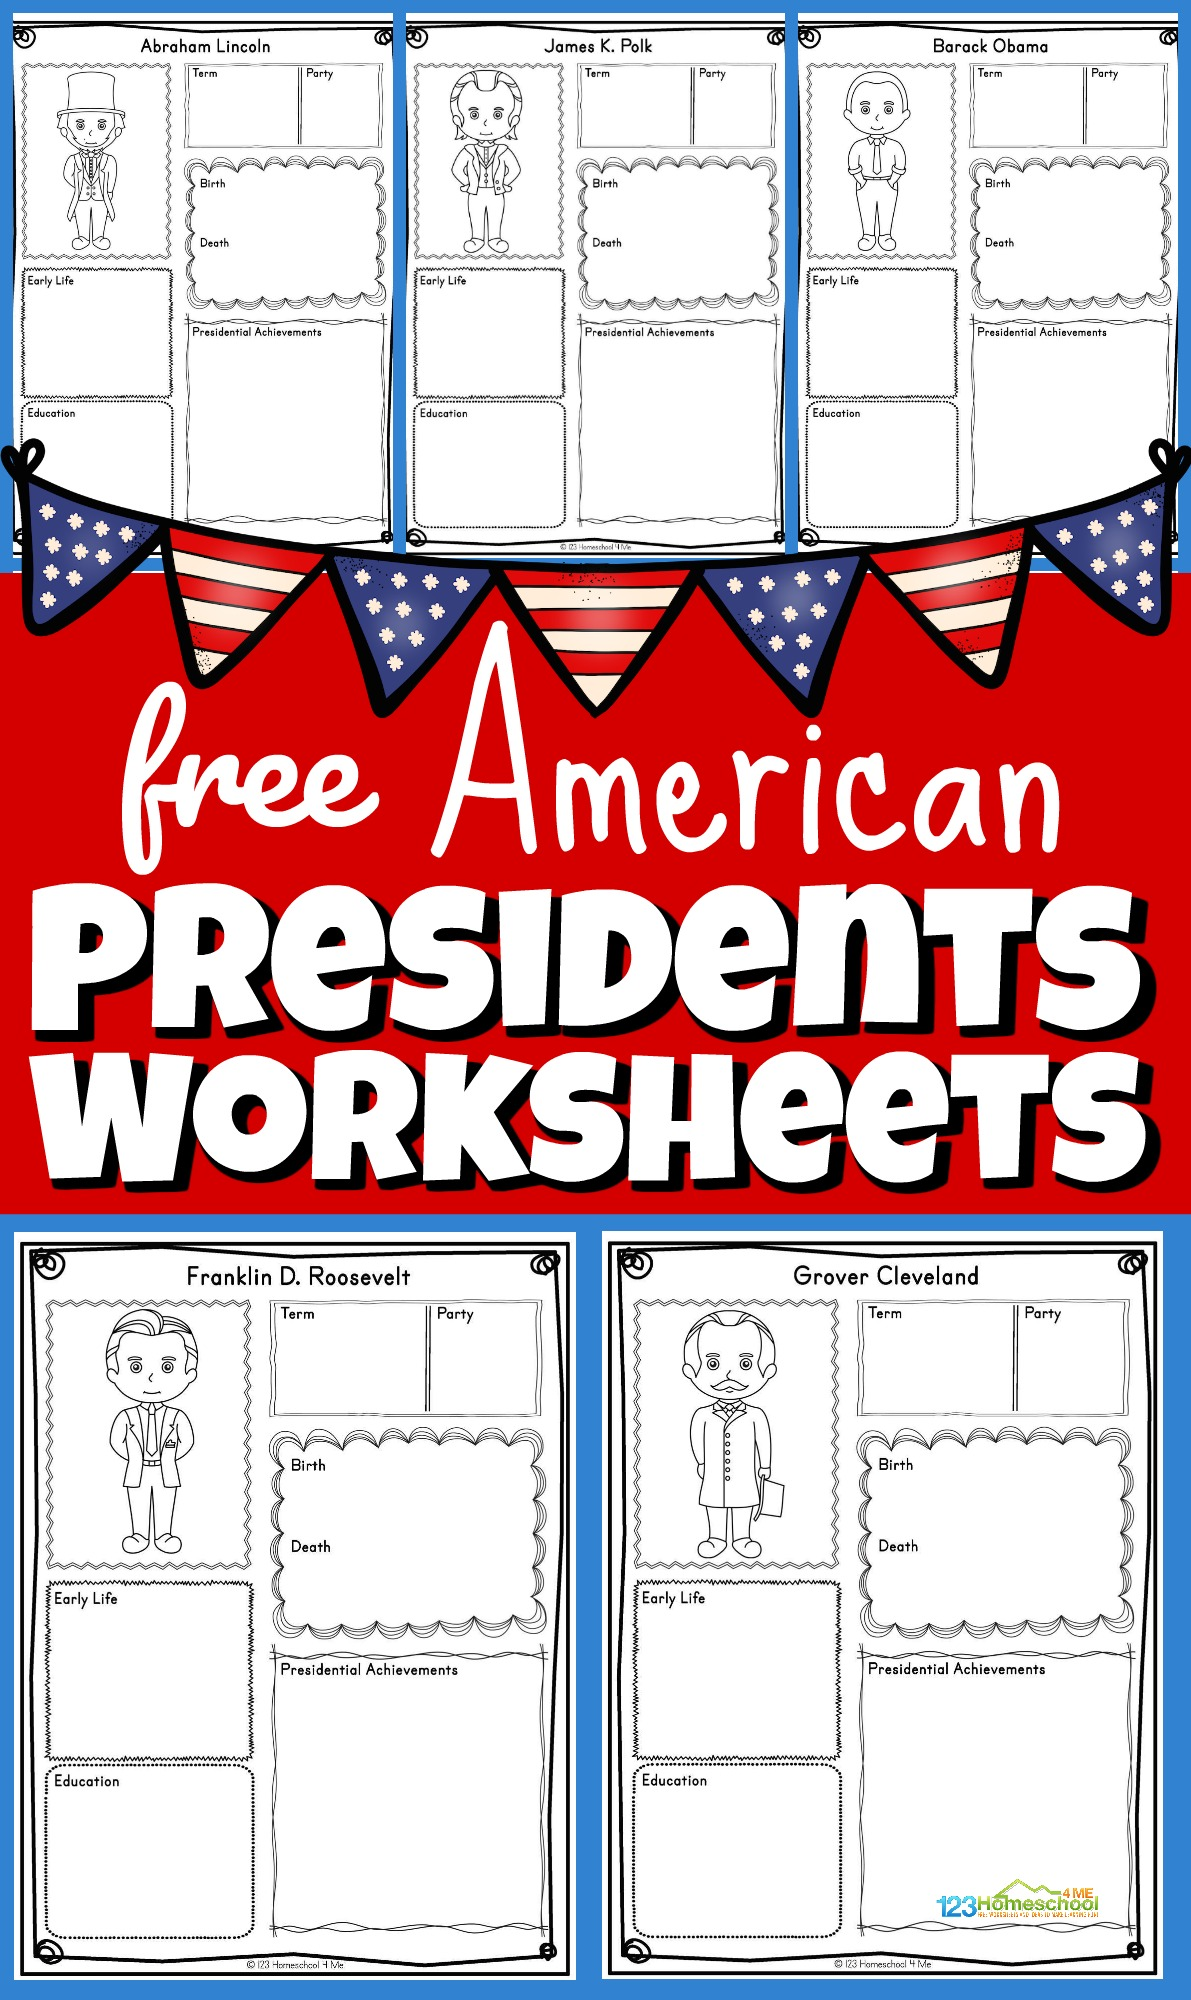 These free U.S.Presidents Worksheets are a great way for children to practice and improve their knowledge of the Presidents of the United States as well as work on their research and handwriting skills. This history for kids activity is perfect for kindergarten, first grade, 2nd grade, 3rd grade, 4th grade, 5th grade, and 6th grade kids learning about American history, preparing for Presidential Elections for kids, or celebrating Presidents Day.